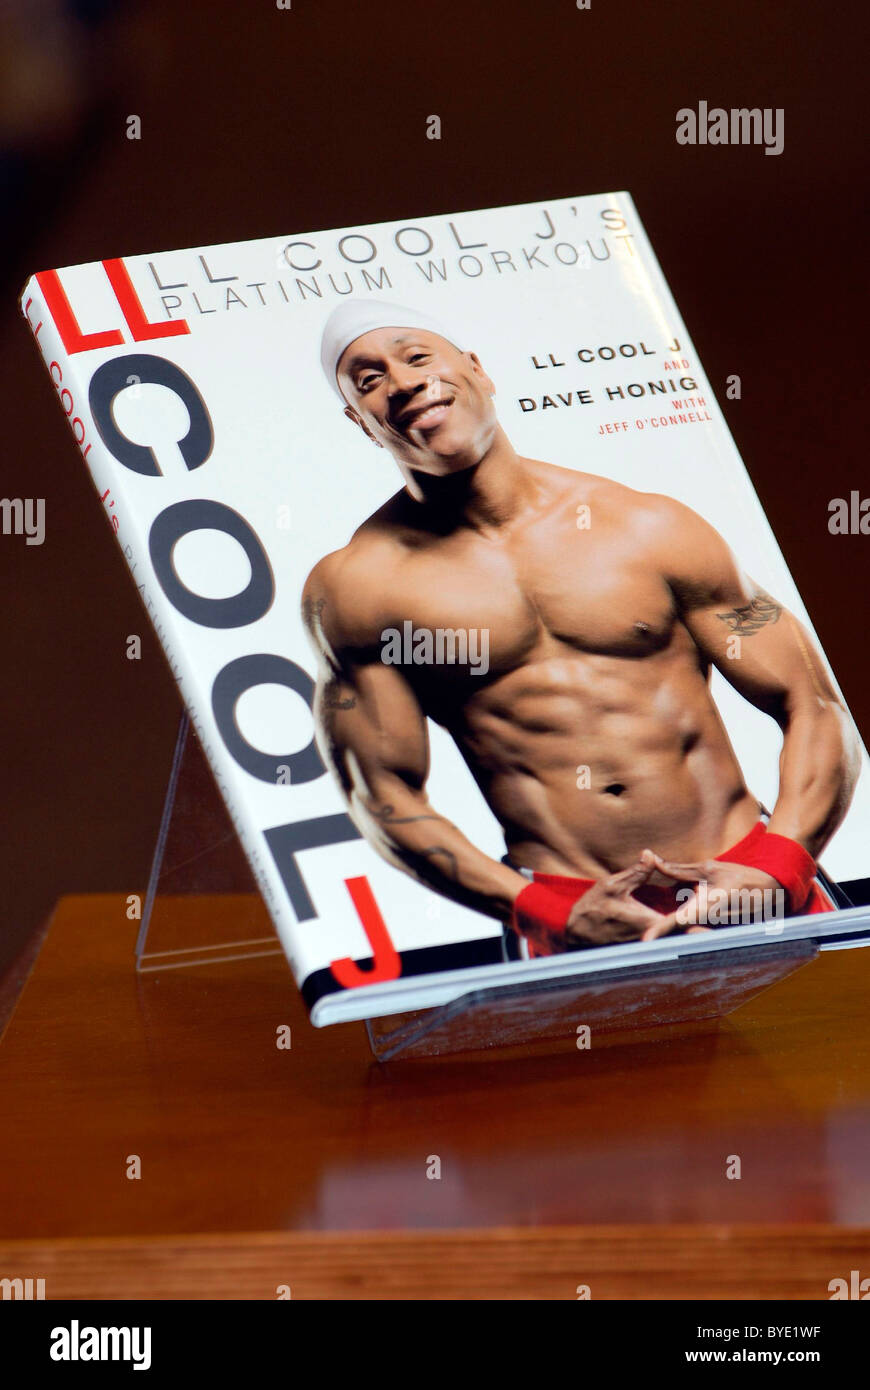 the autobiography of james todd smith aka l l cool j Buy a cheap copy of i make my own rules book by karen james todd smith, aka ll cool j, lays bare his heart and soul in this engaging and candid autobiography.